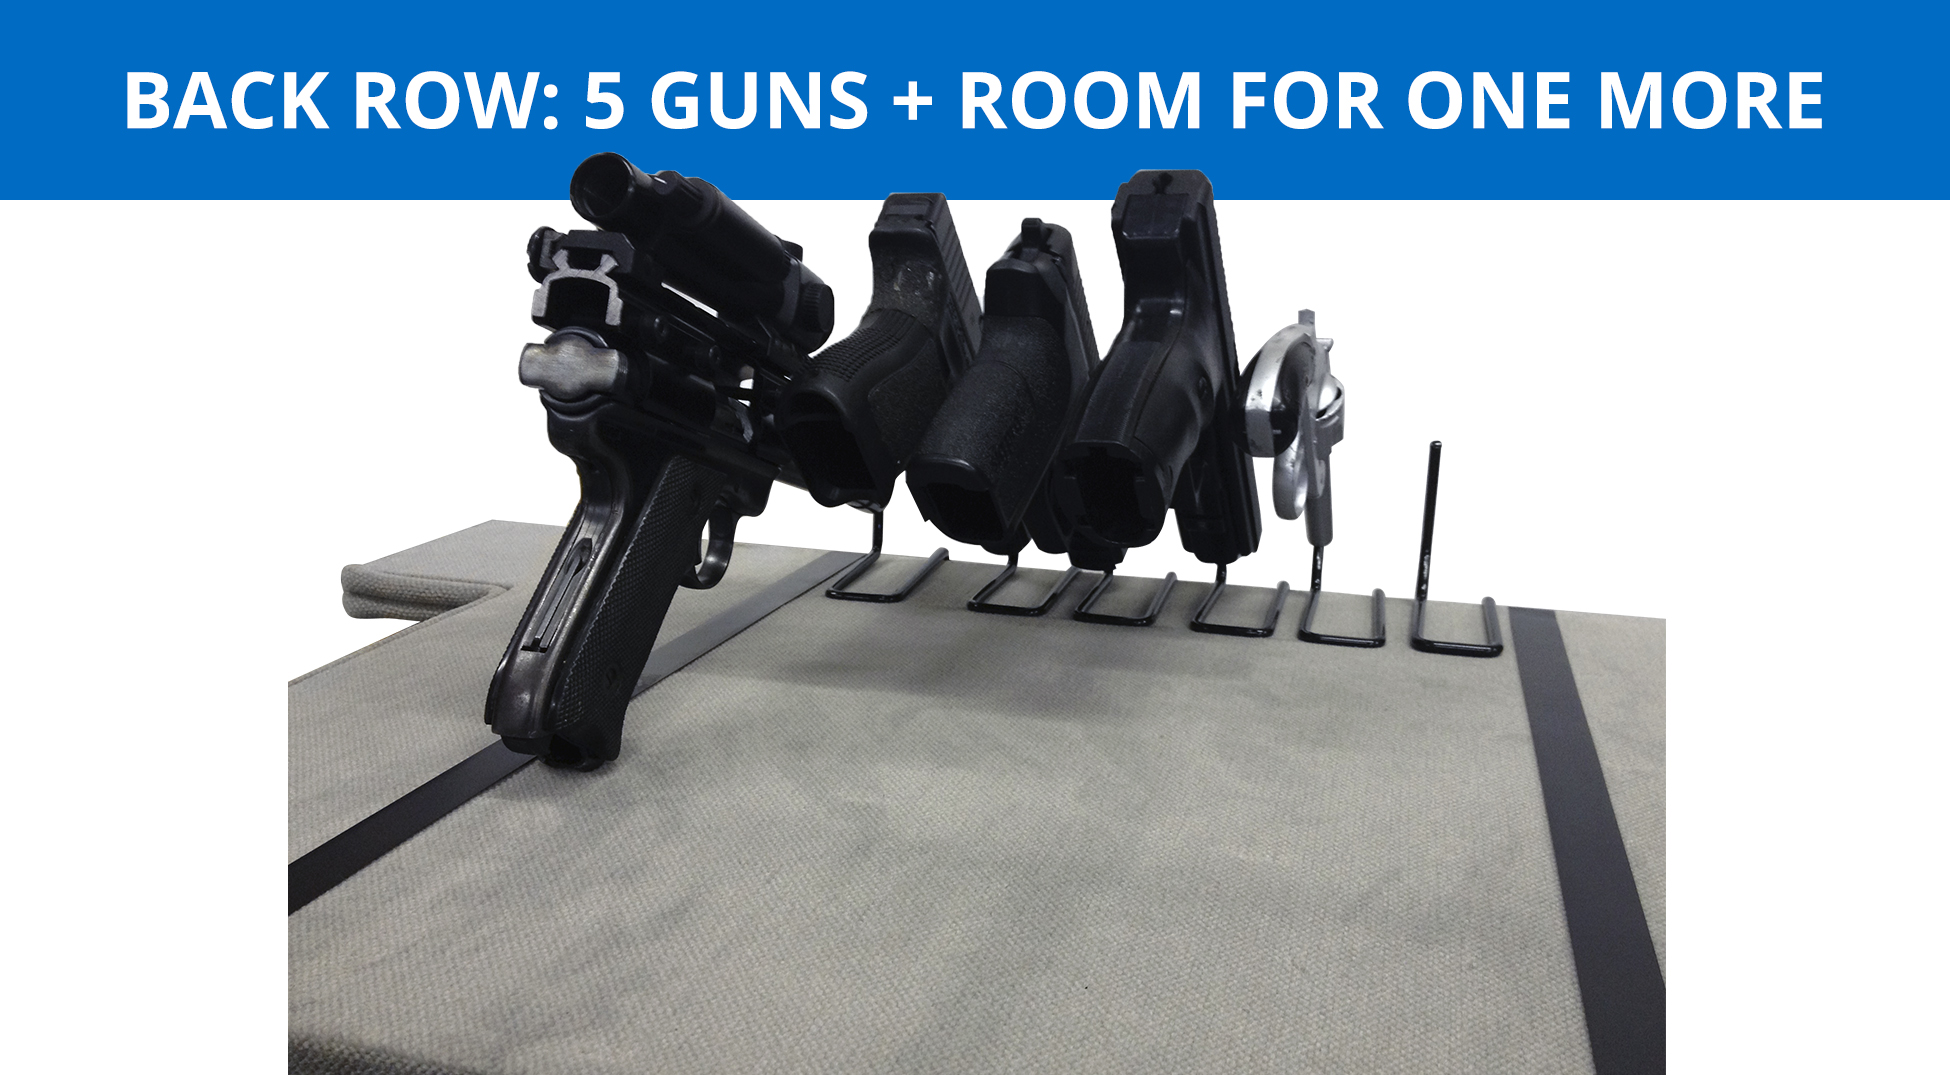 back-row-with-handgun-hangers.jpg